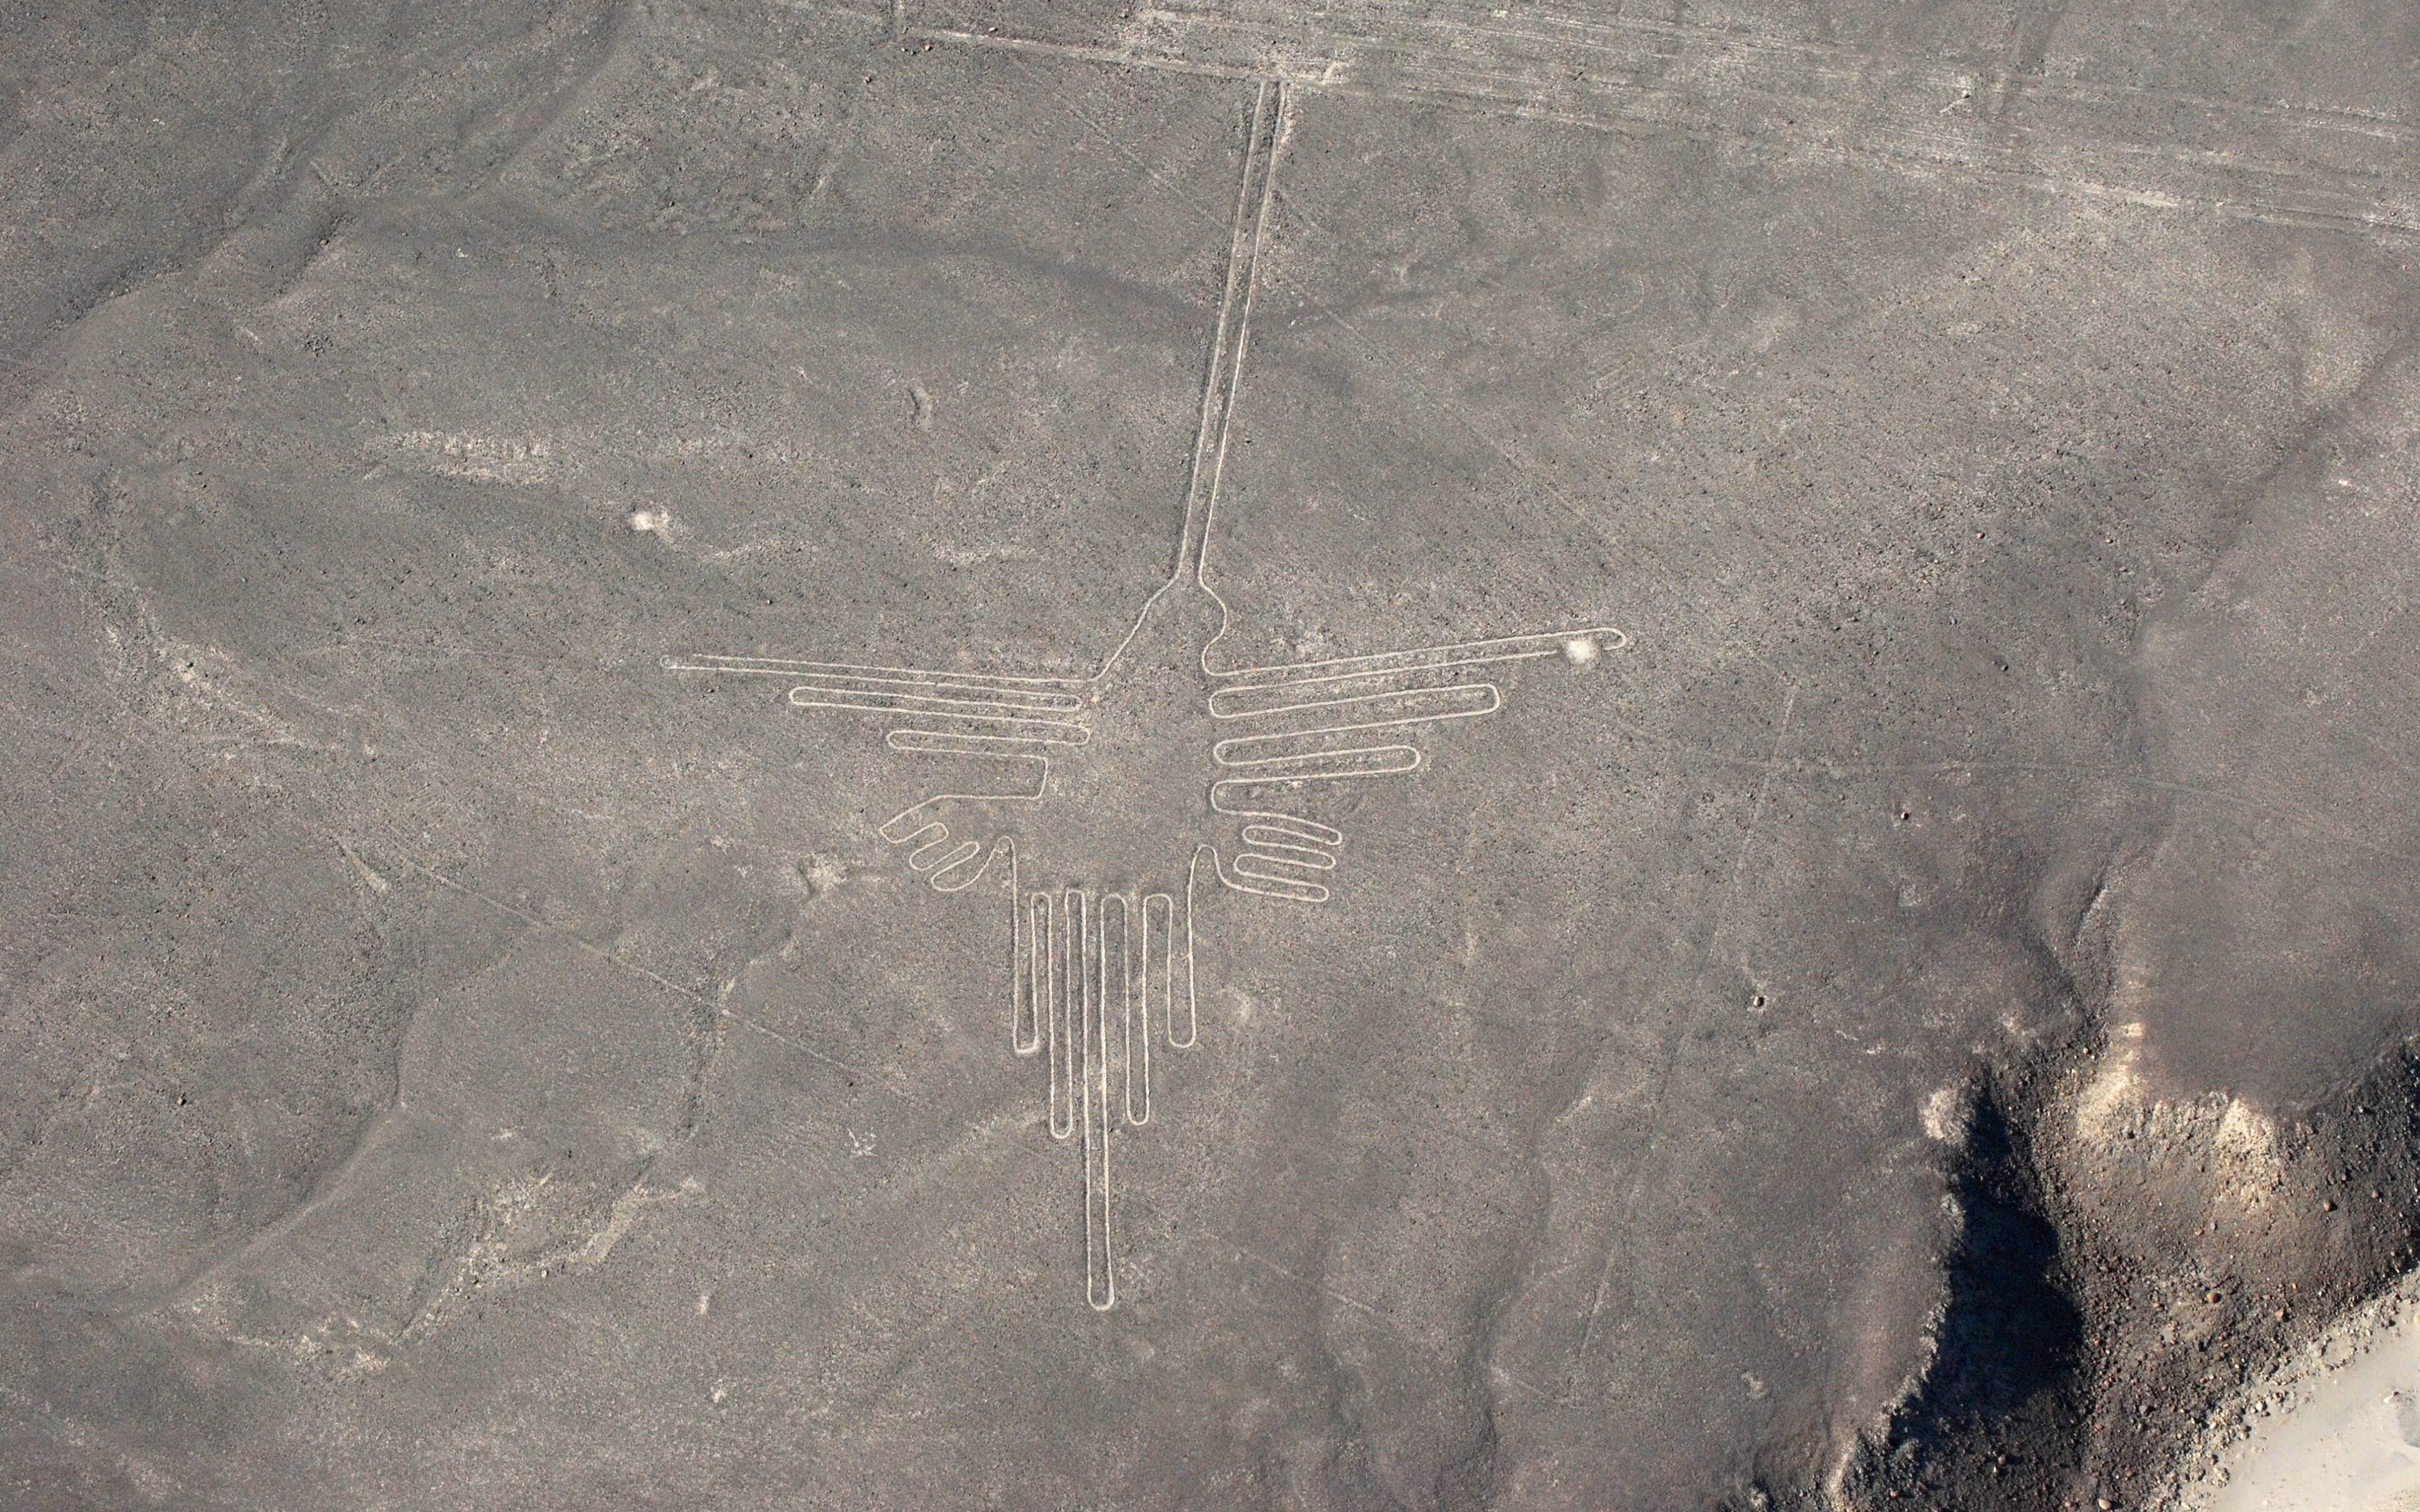 FEATURED NAZCA - Nazca Lines